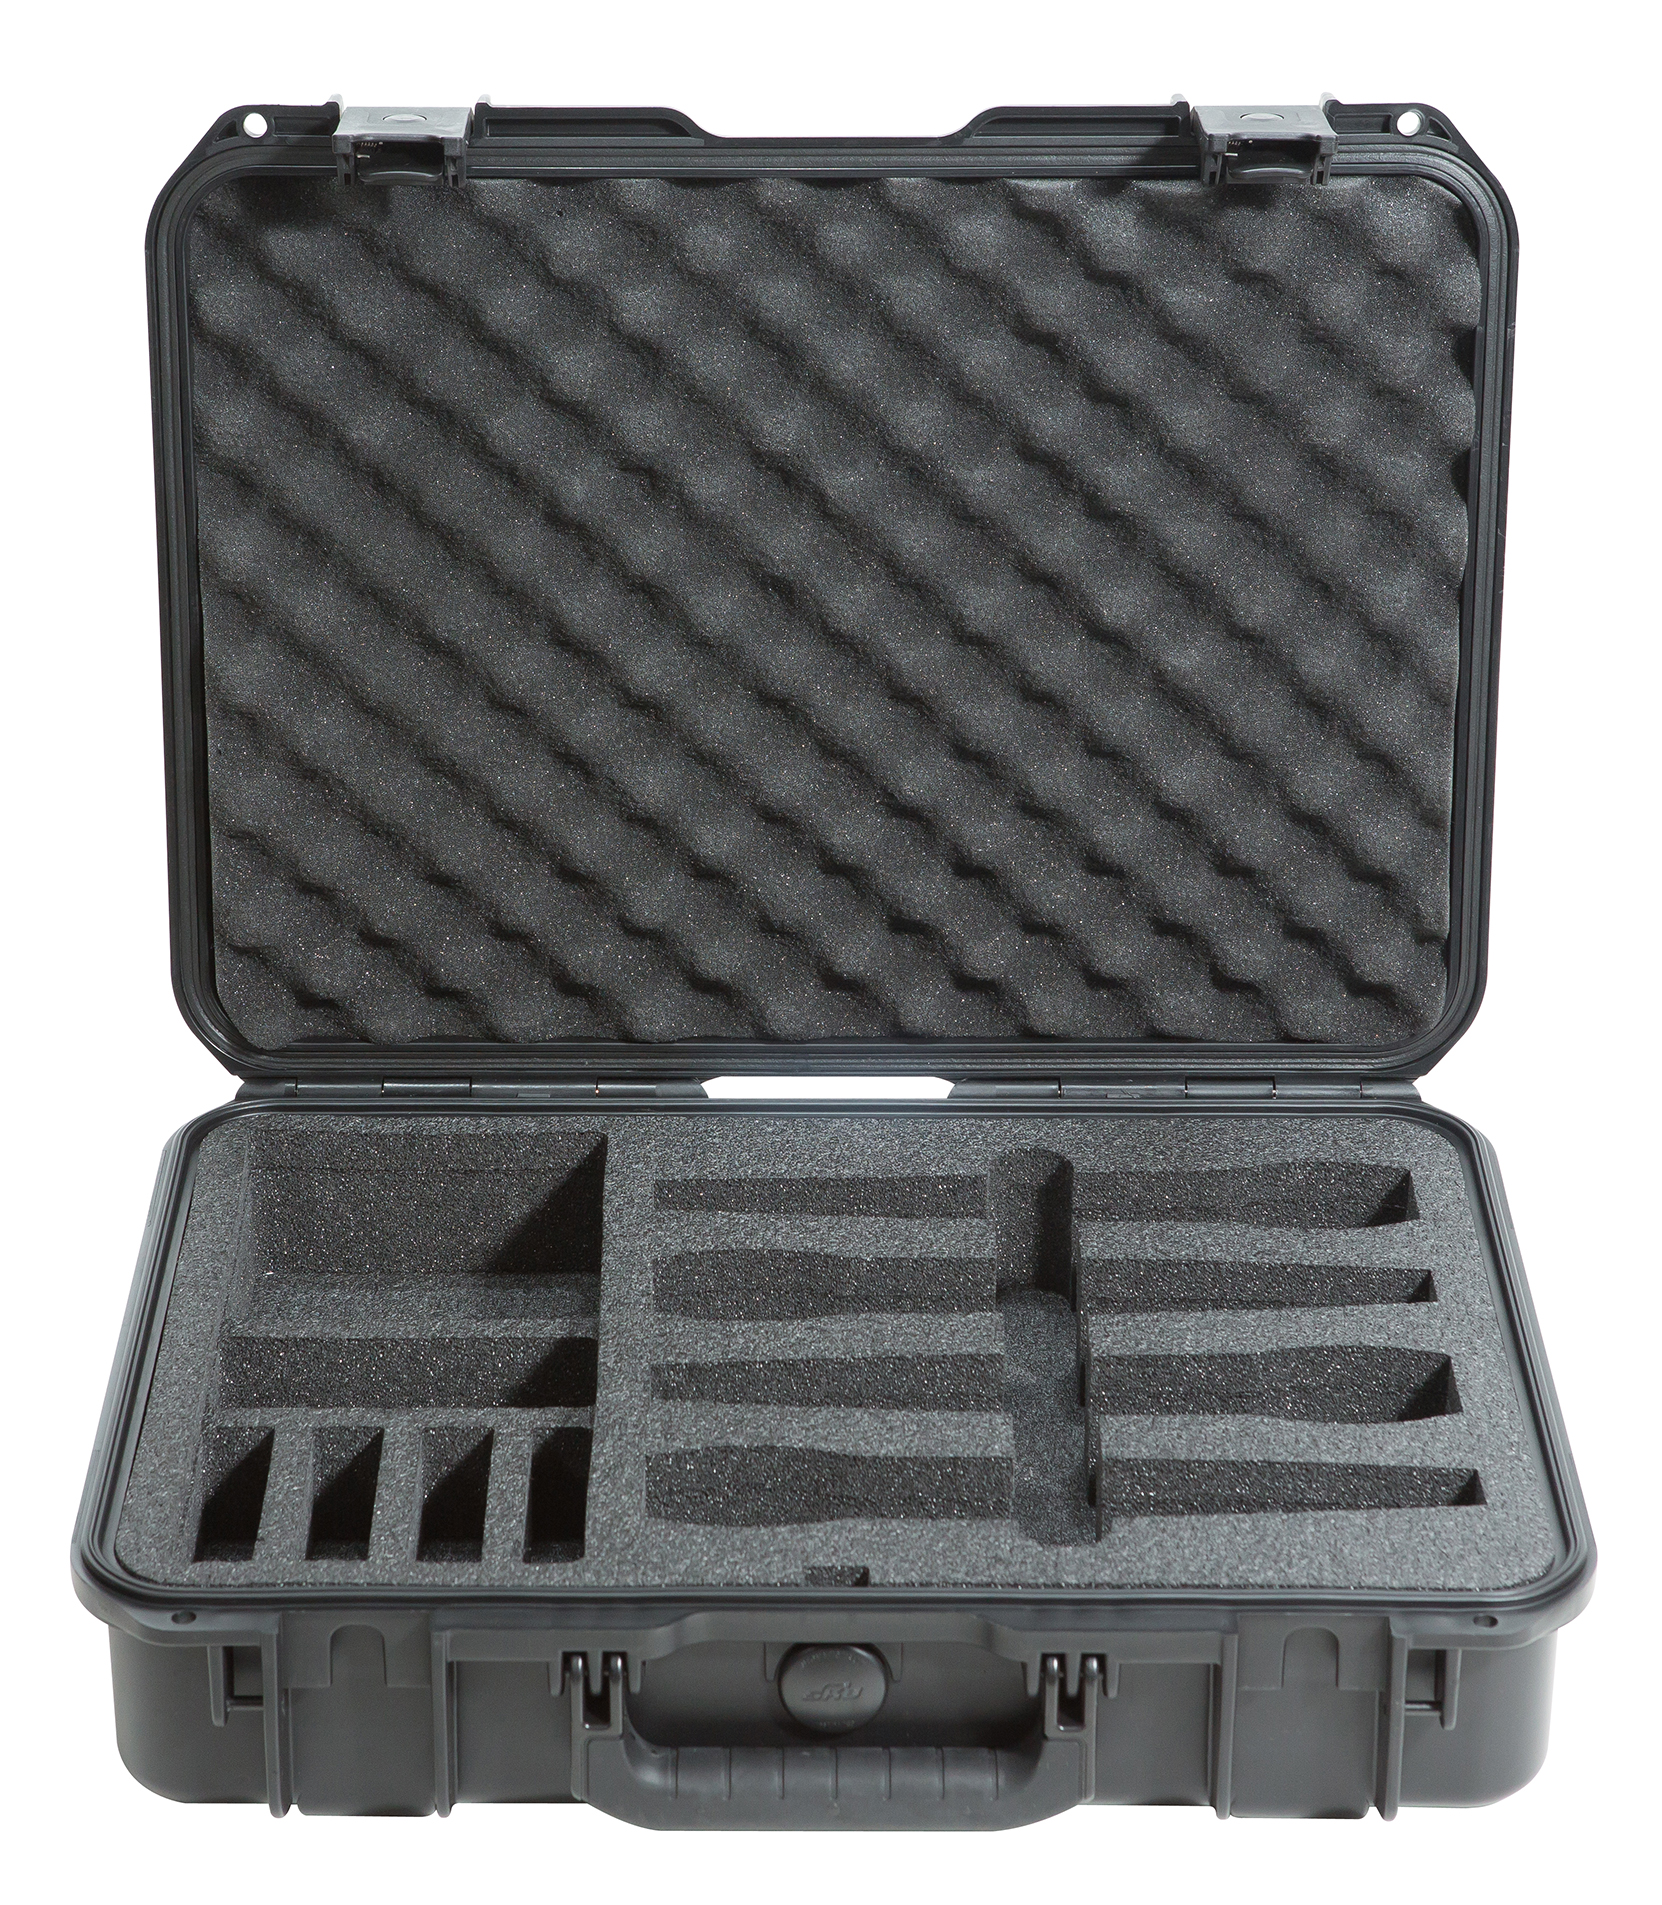 Buy skb 3i 1813 5WMC iSeries Injection Molded Case for 4 Melody House